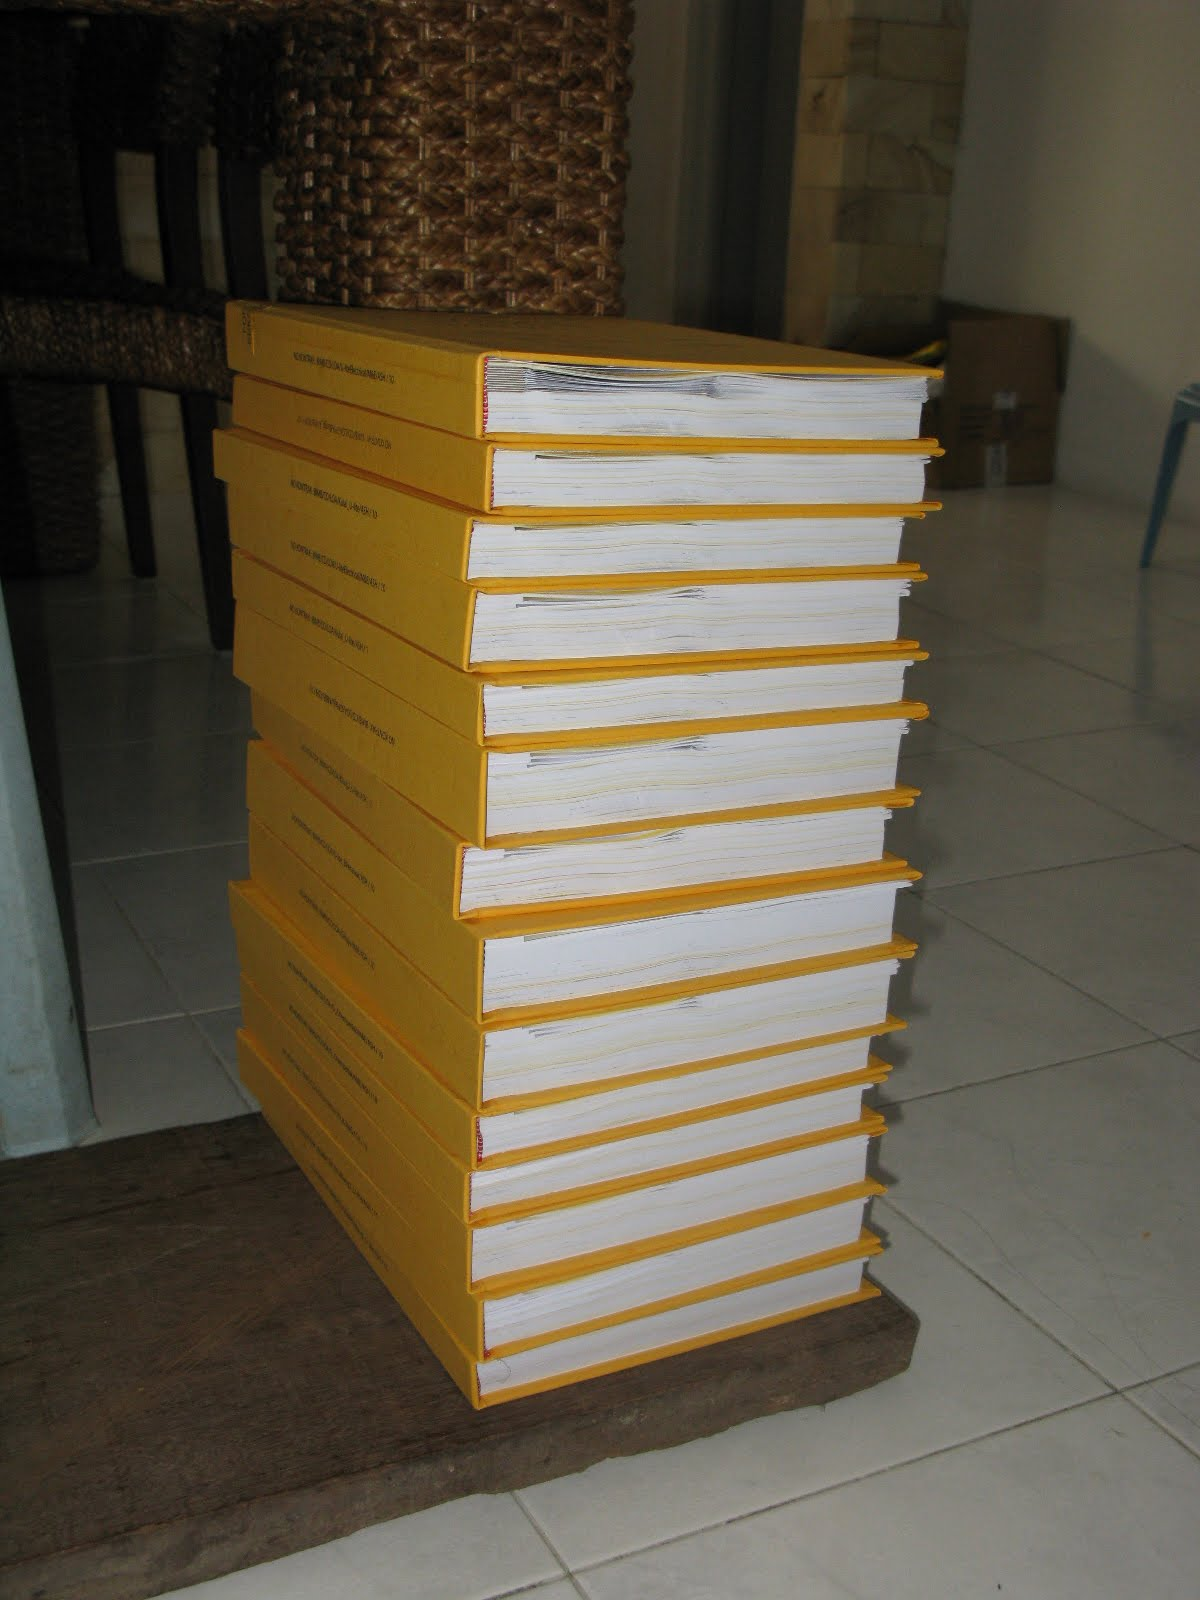 26 books for electrical contract binding for bank islam thank you beau art stationery for your source